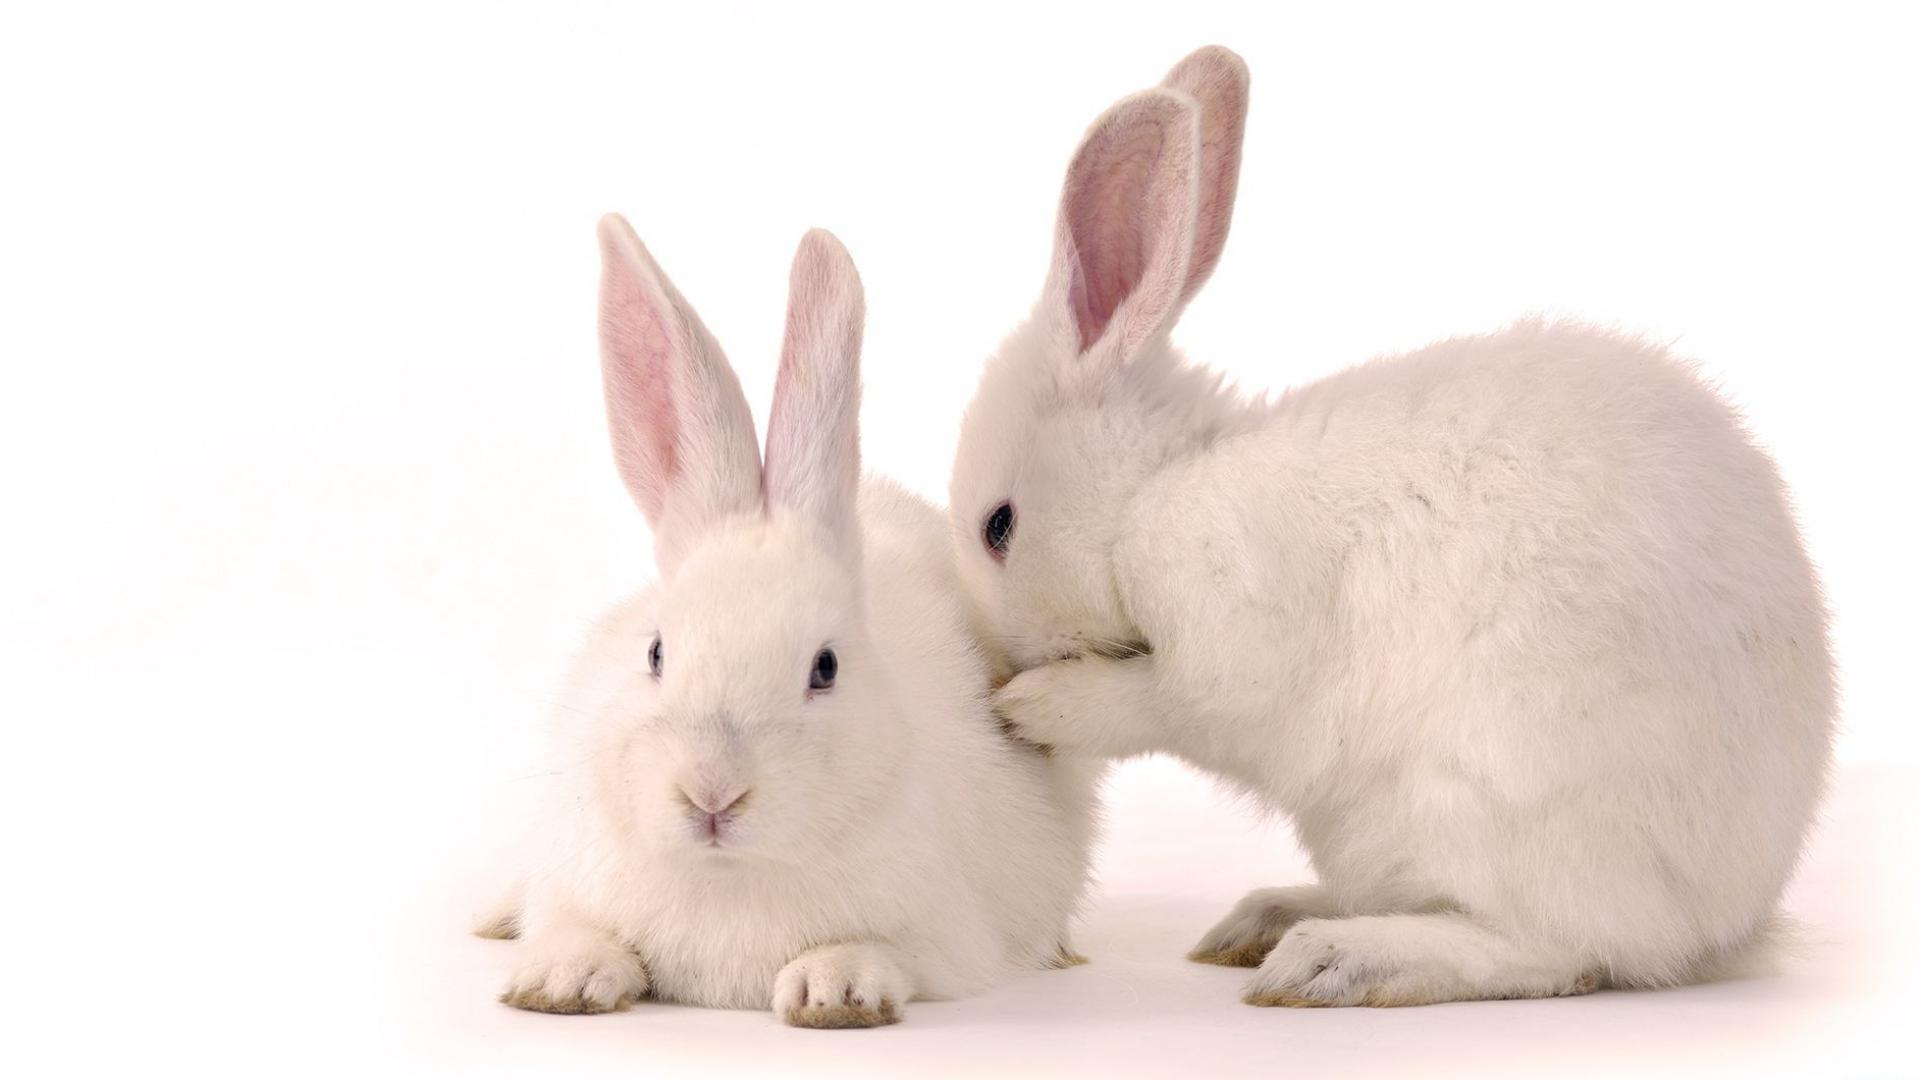 22806 download wallpaper Animals, Rabbits screensavers and pictures for free